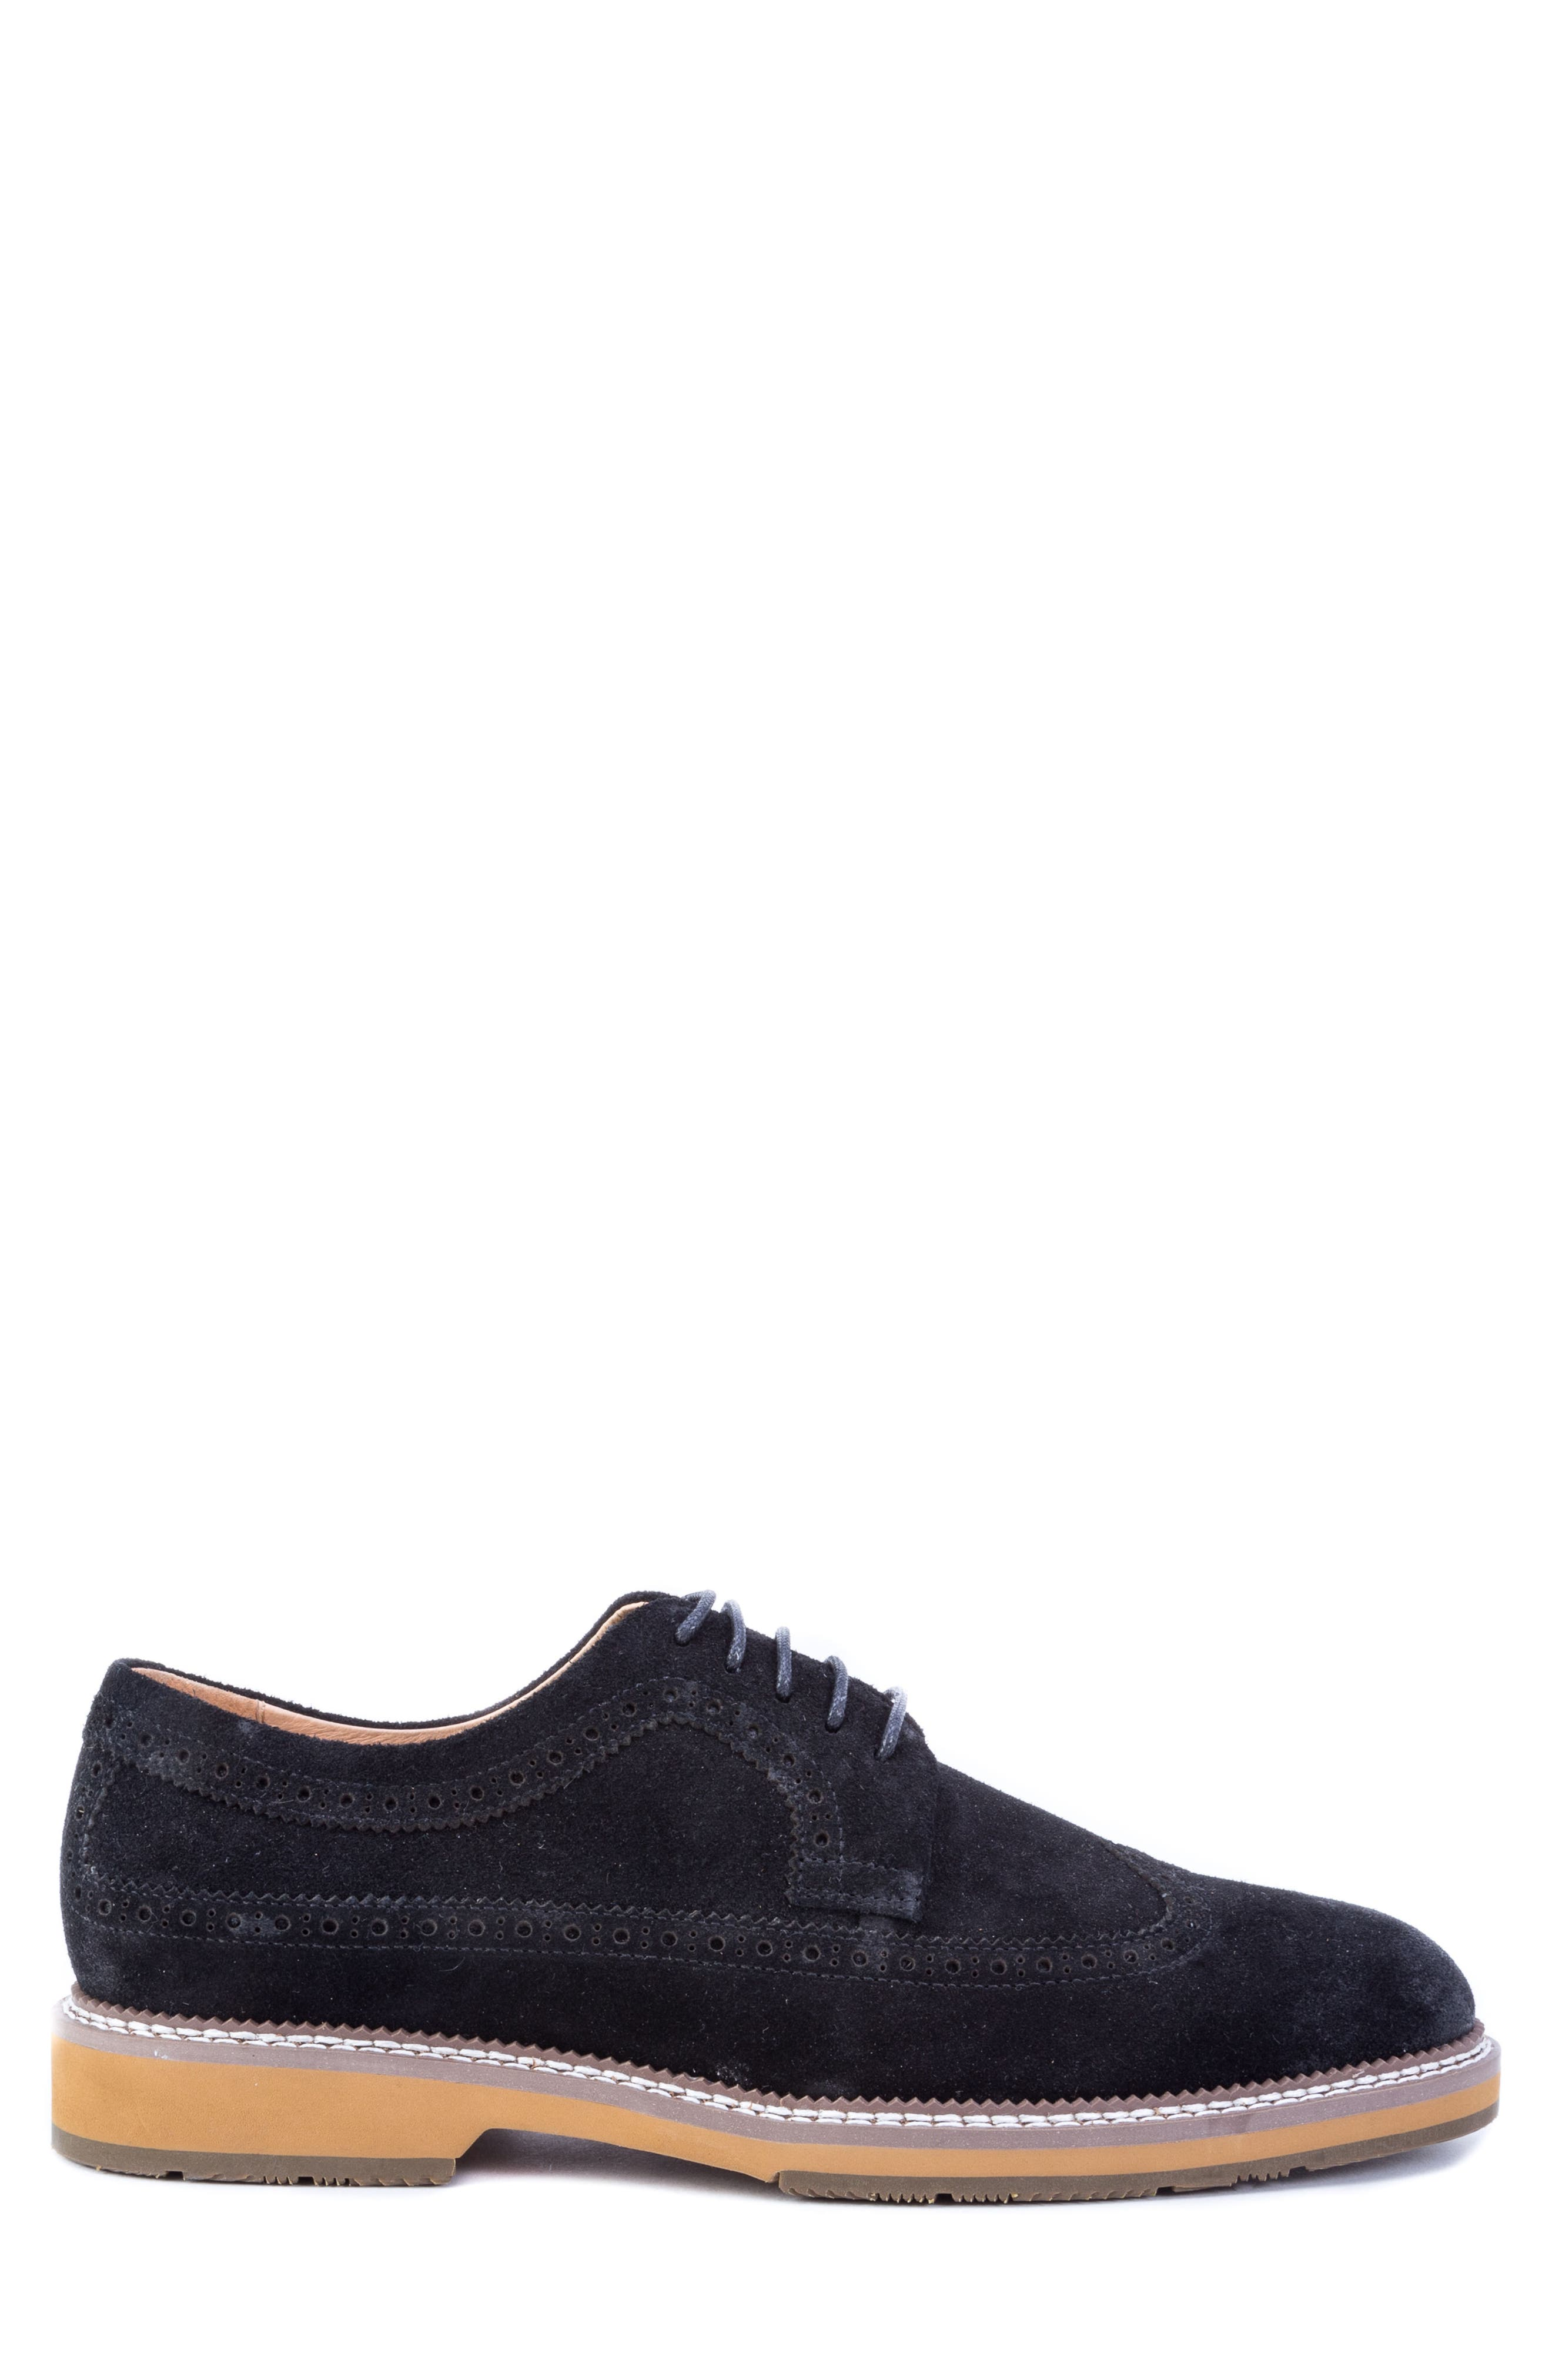 Modigliani Wingtip Derby,                             Alternate thumbnail 3, color,                             BLACK SUEDE